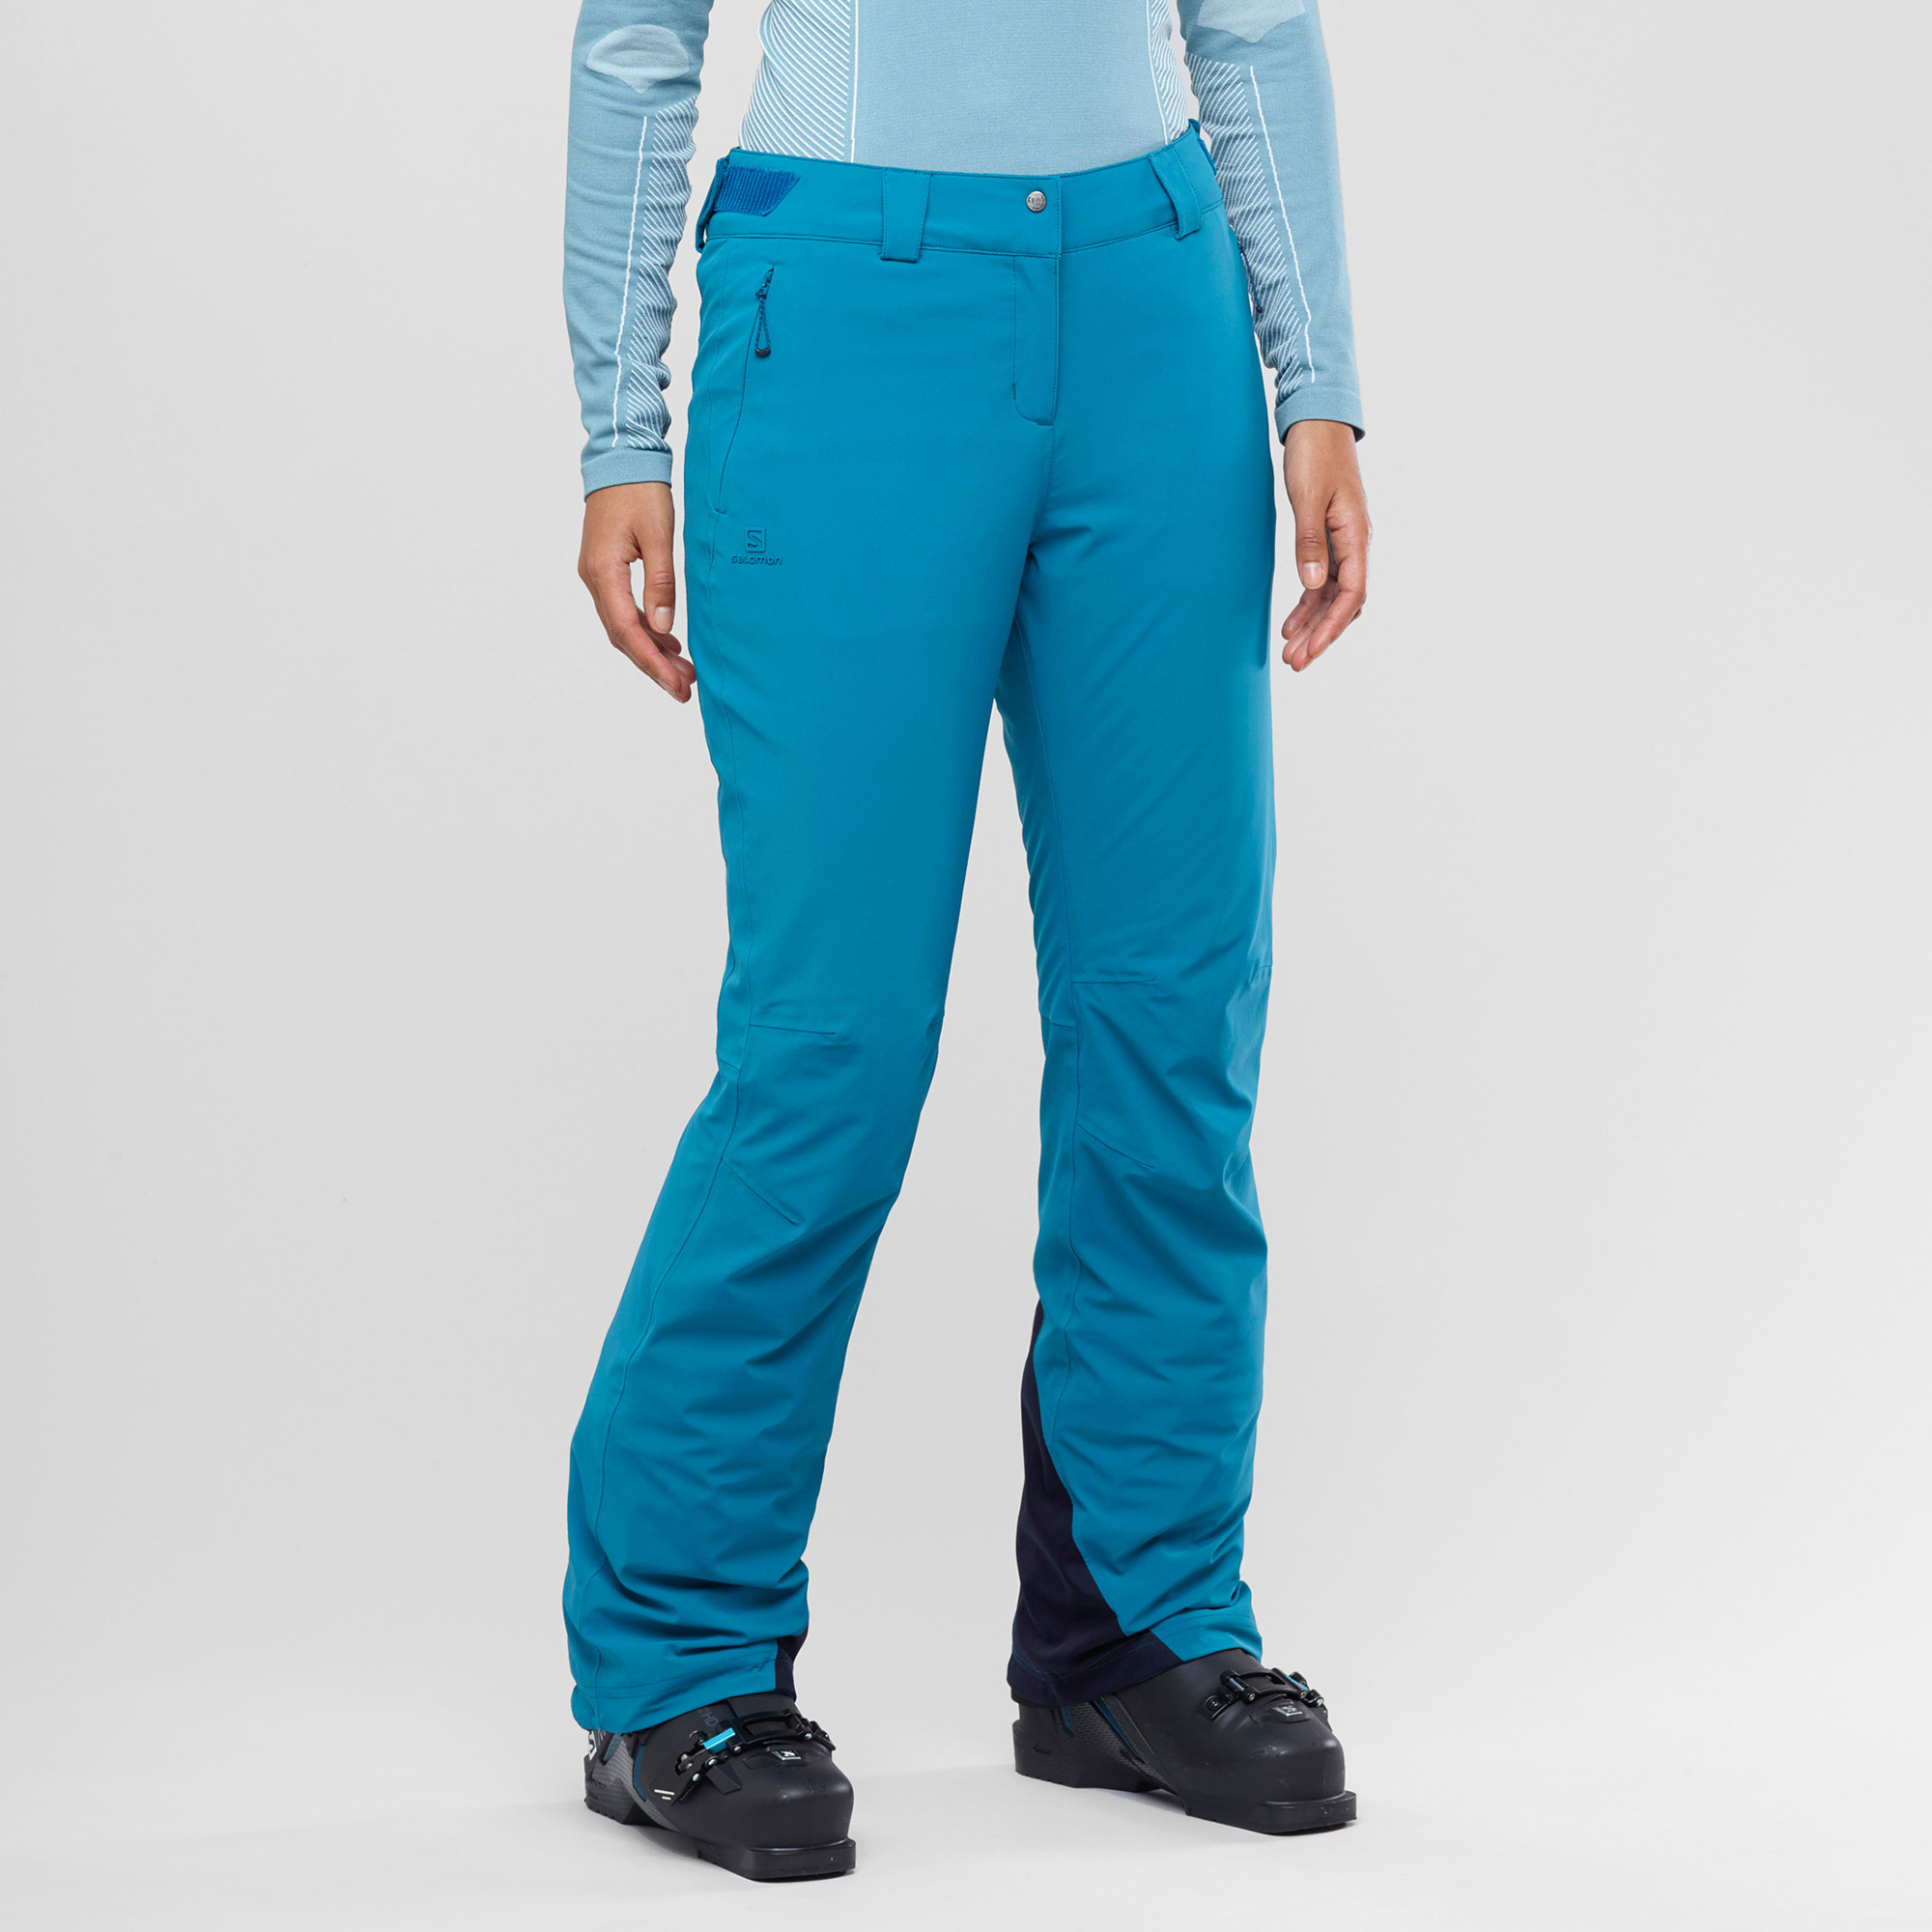 Salomon Salomon Icemania Pant Women's